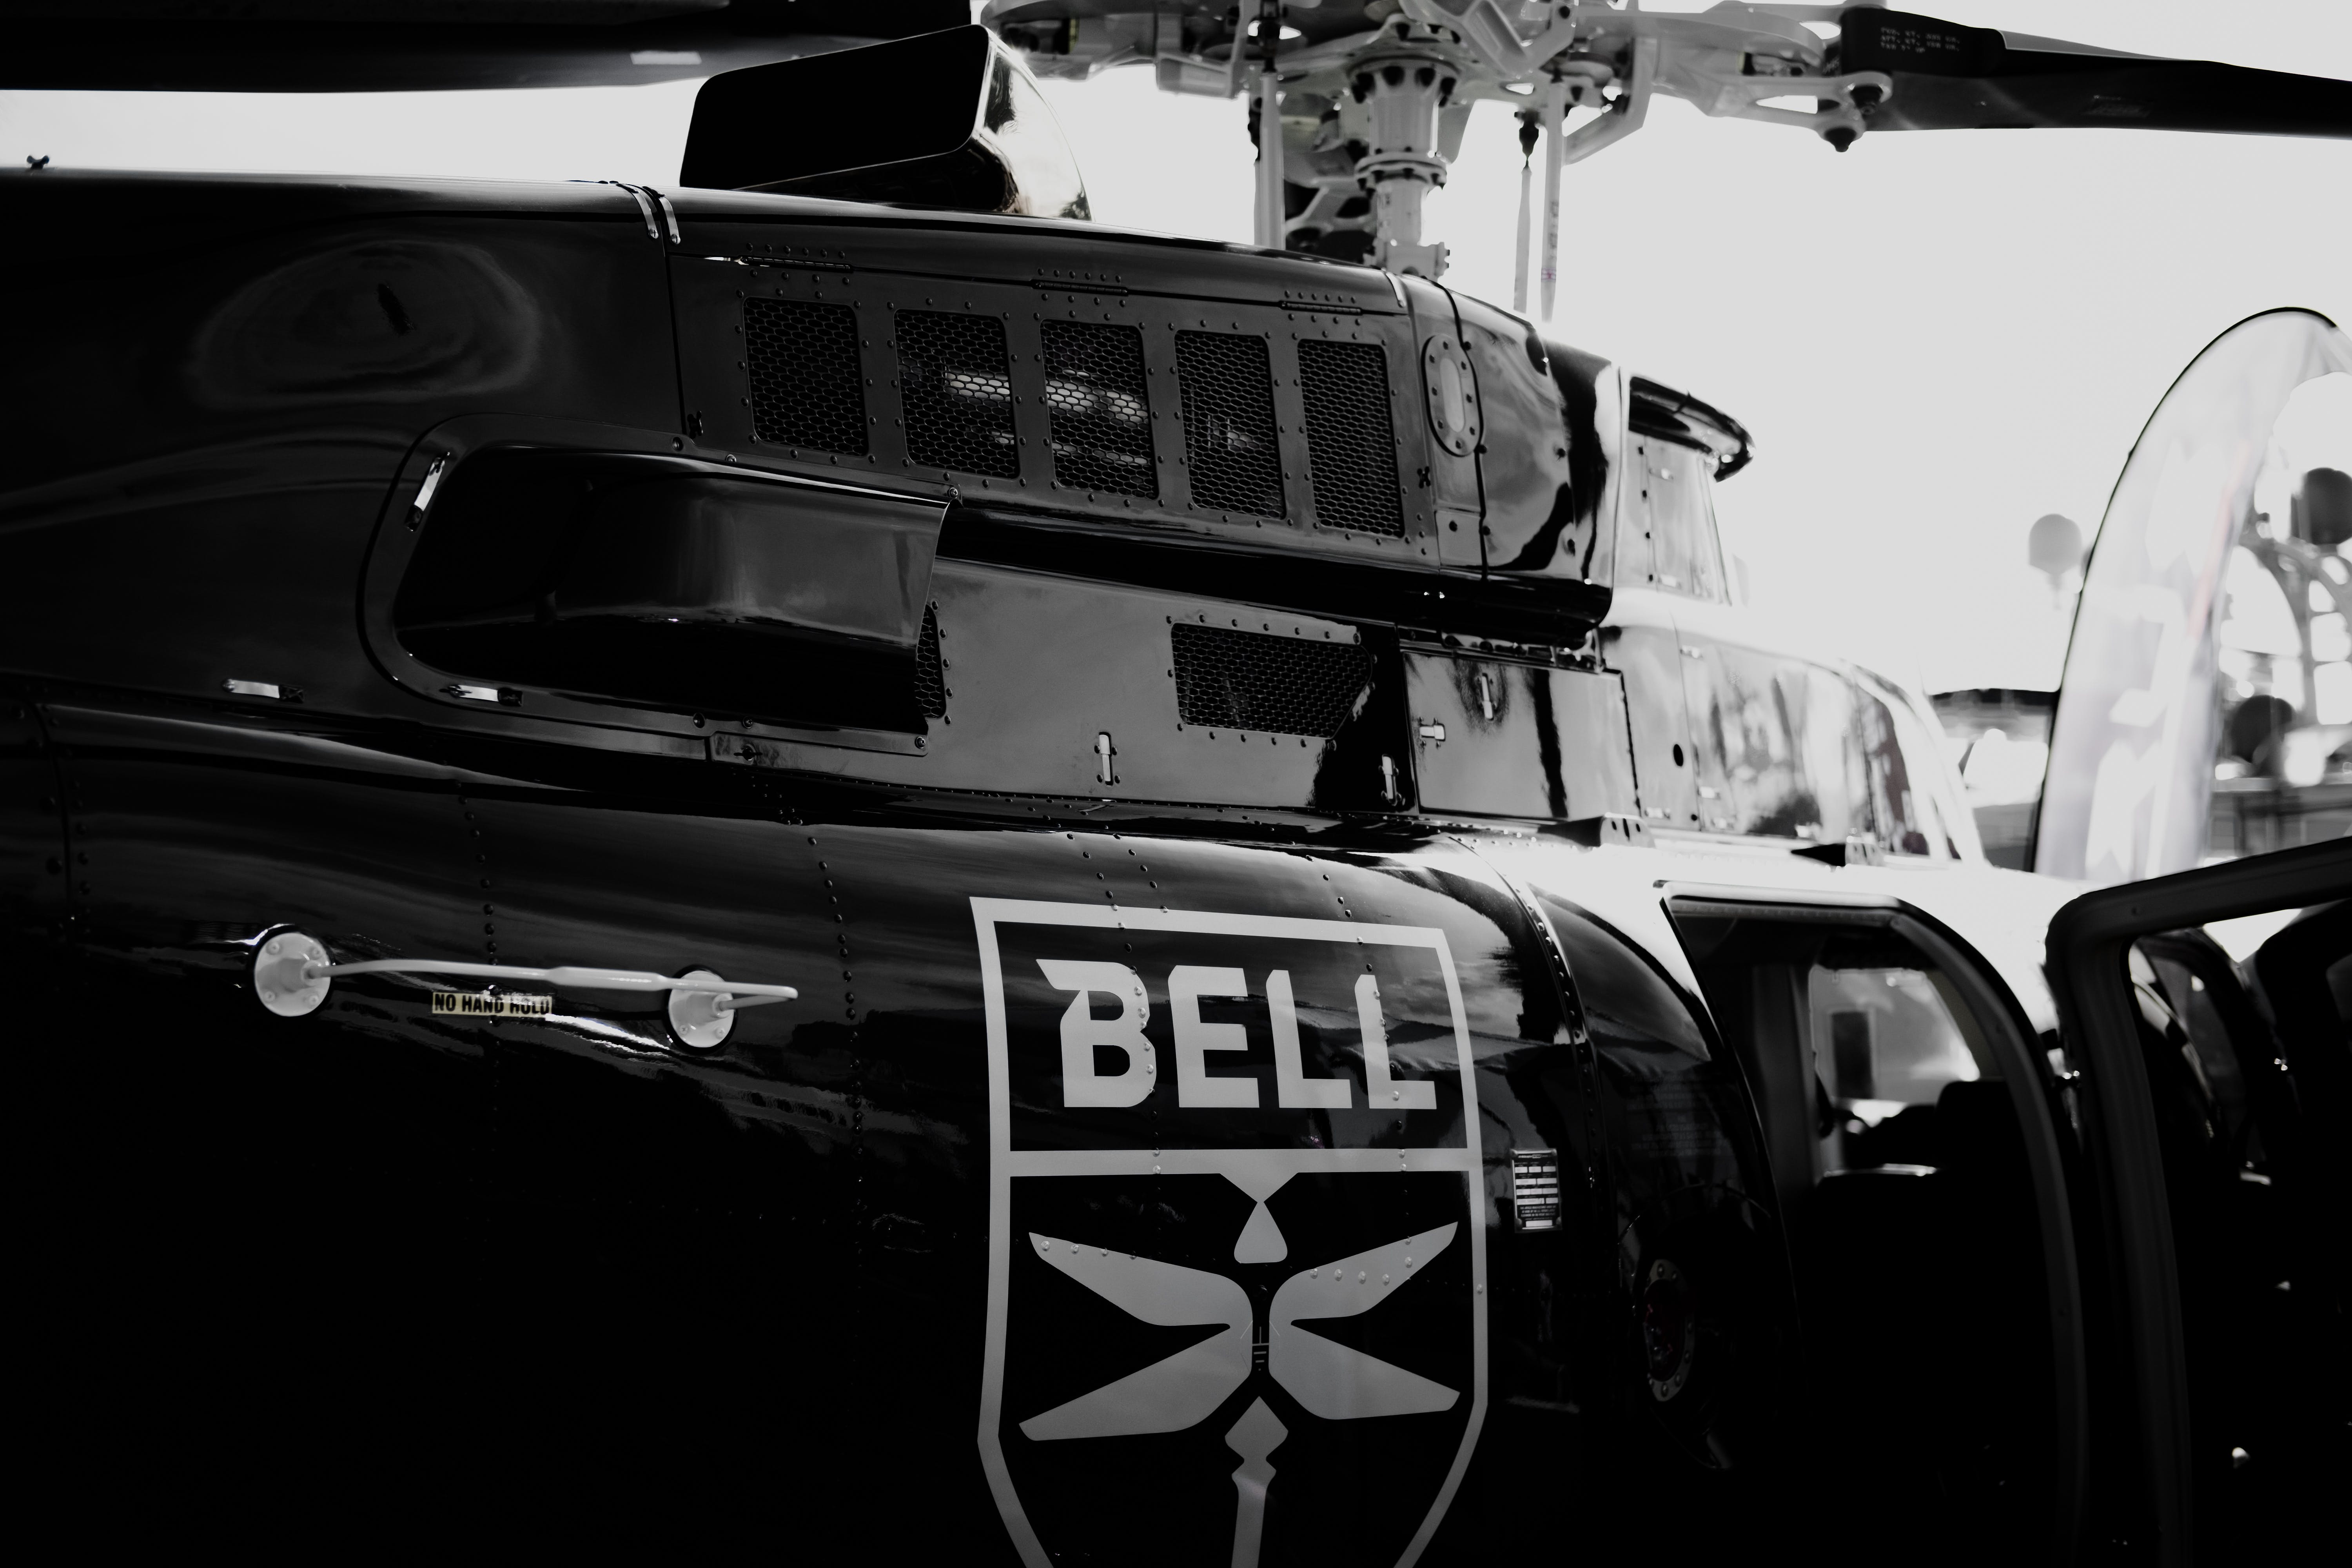 Grayscale Photo of Bell Helicopter